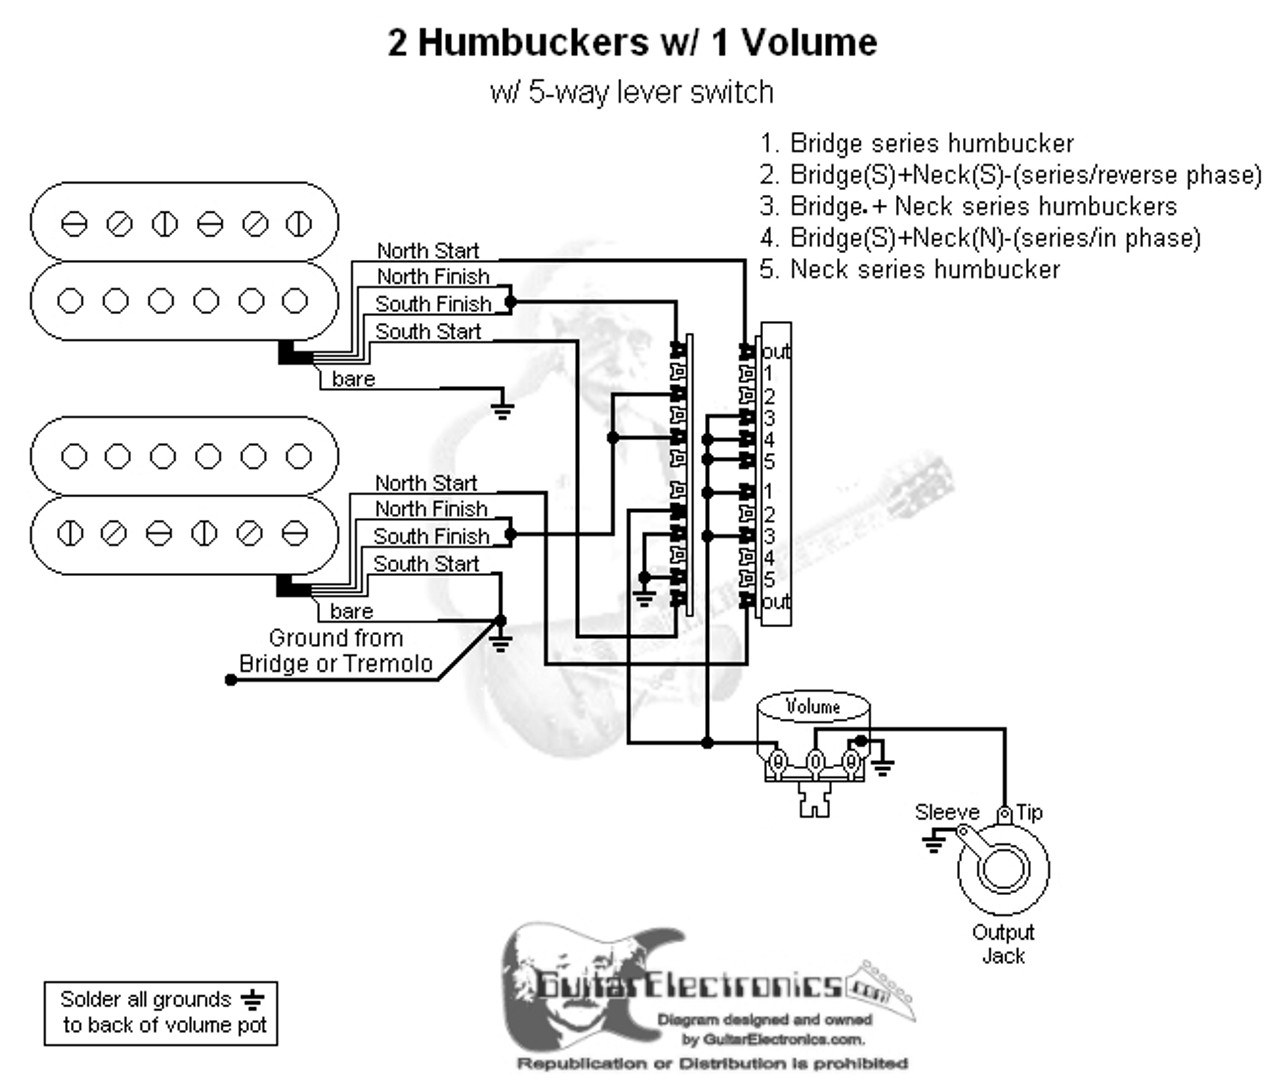 small resolution of wiring diagram 2 humbuckers 5way lever switch 1 volume 1 tone 03 art of tone wiring diagram